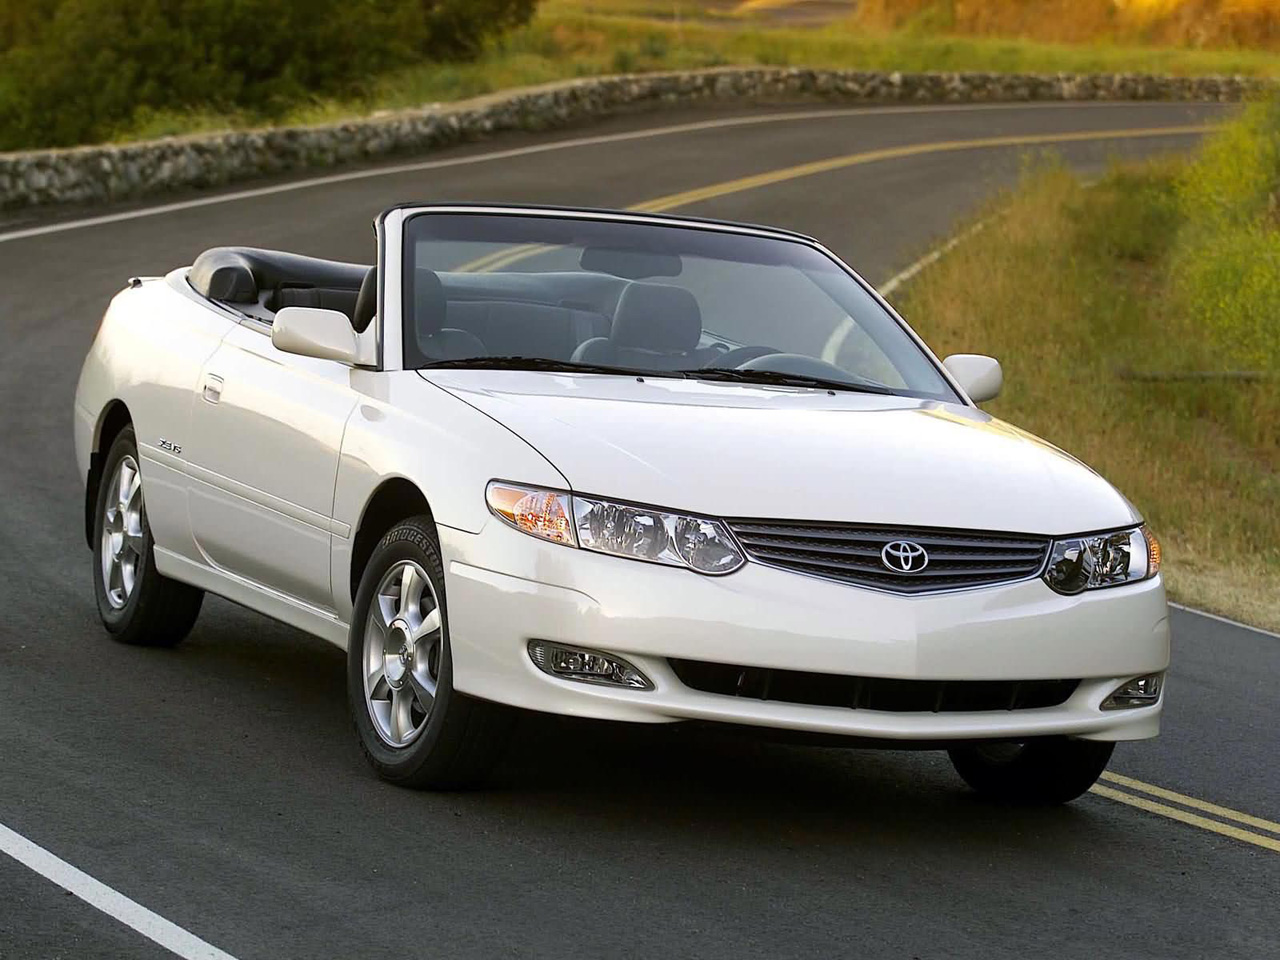 toyota camry solara 2001 review amazing pictures and. Black Bedroom Furniture Sets. Home Design Ideas